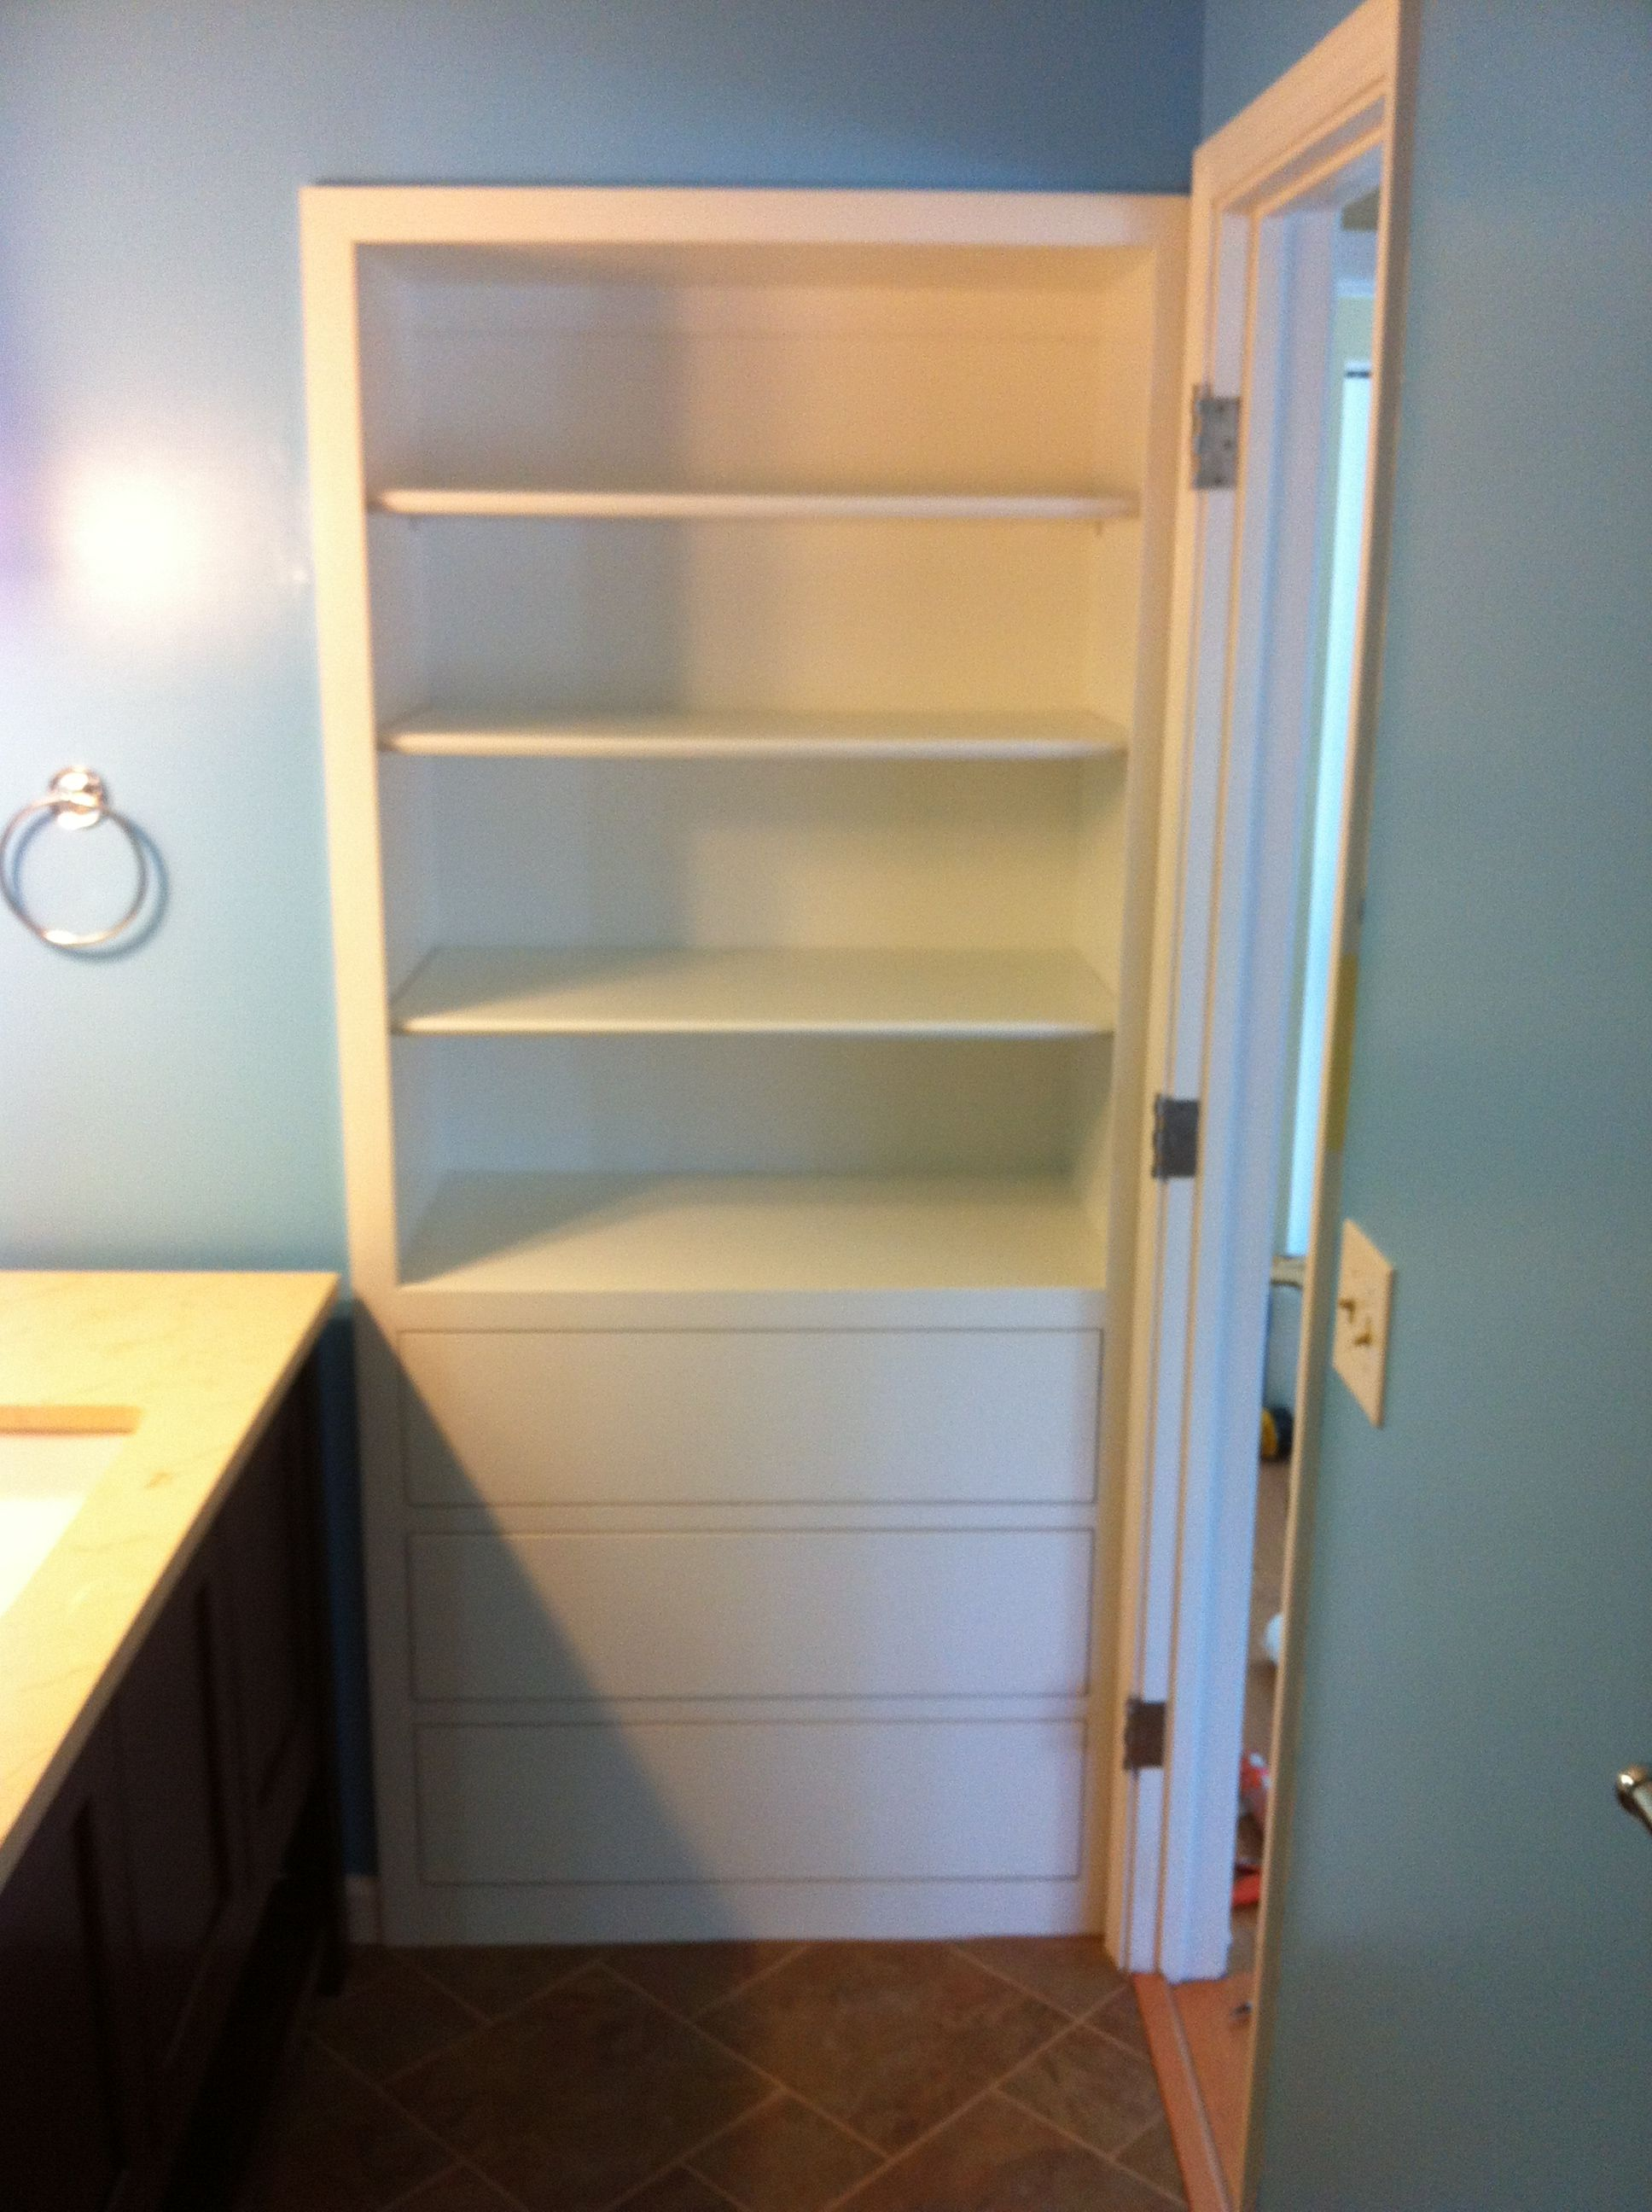 Recessed Bathroom Storage Cabinet.Recessed Bathroom Storage Cabinet Google Search Ect